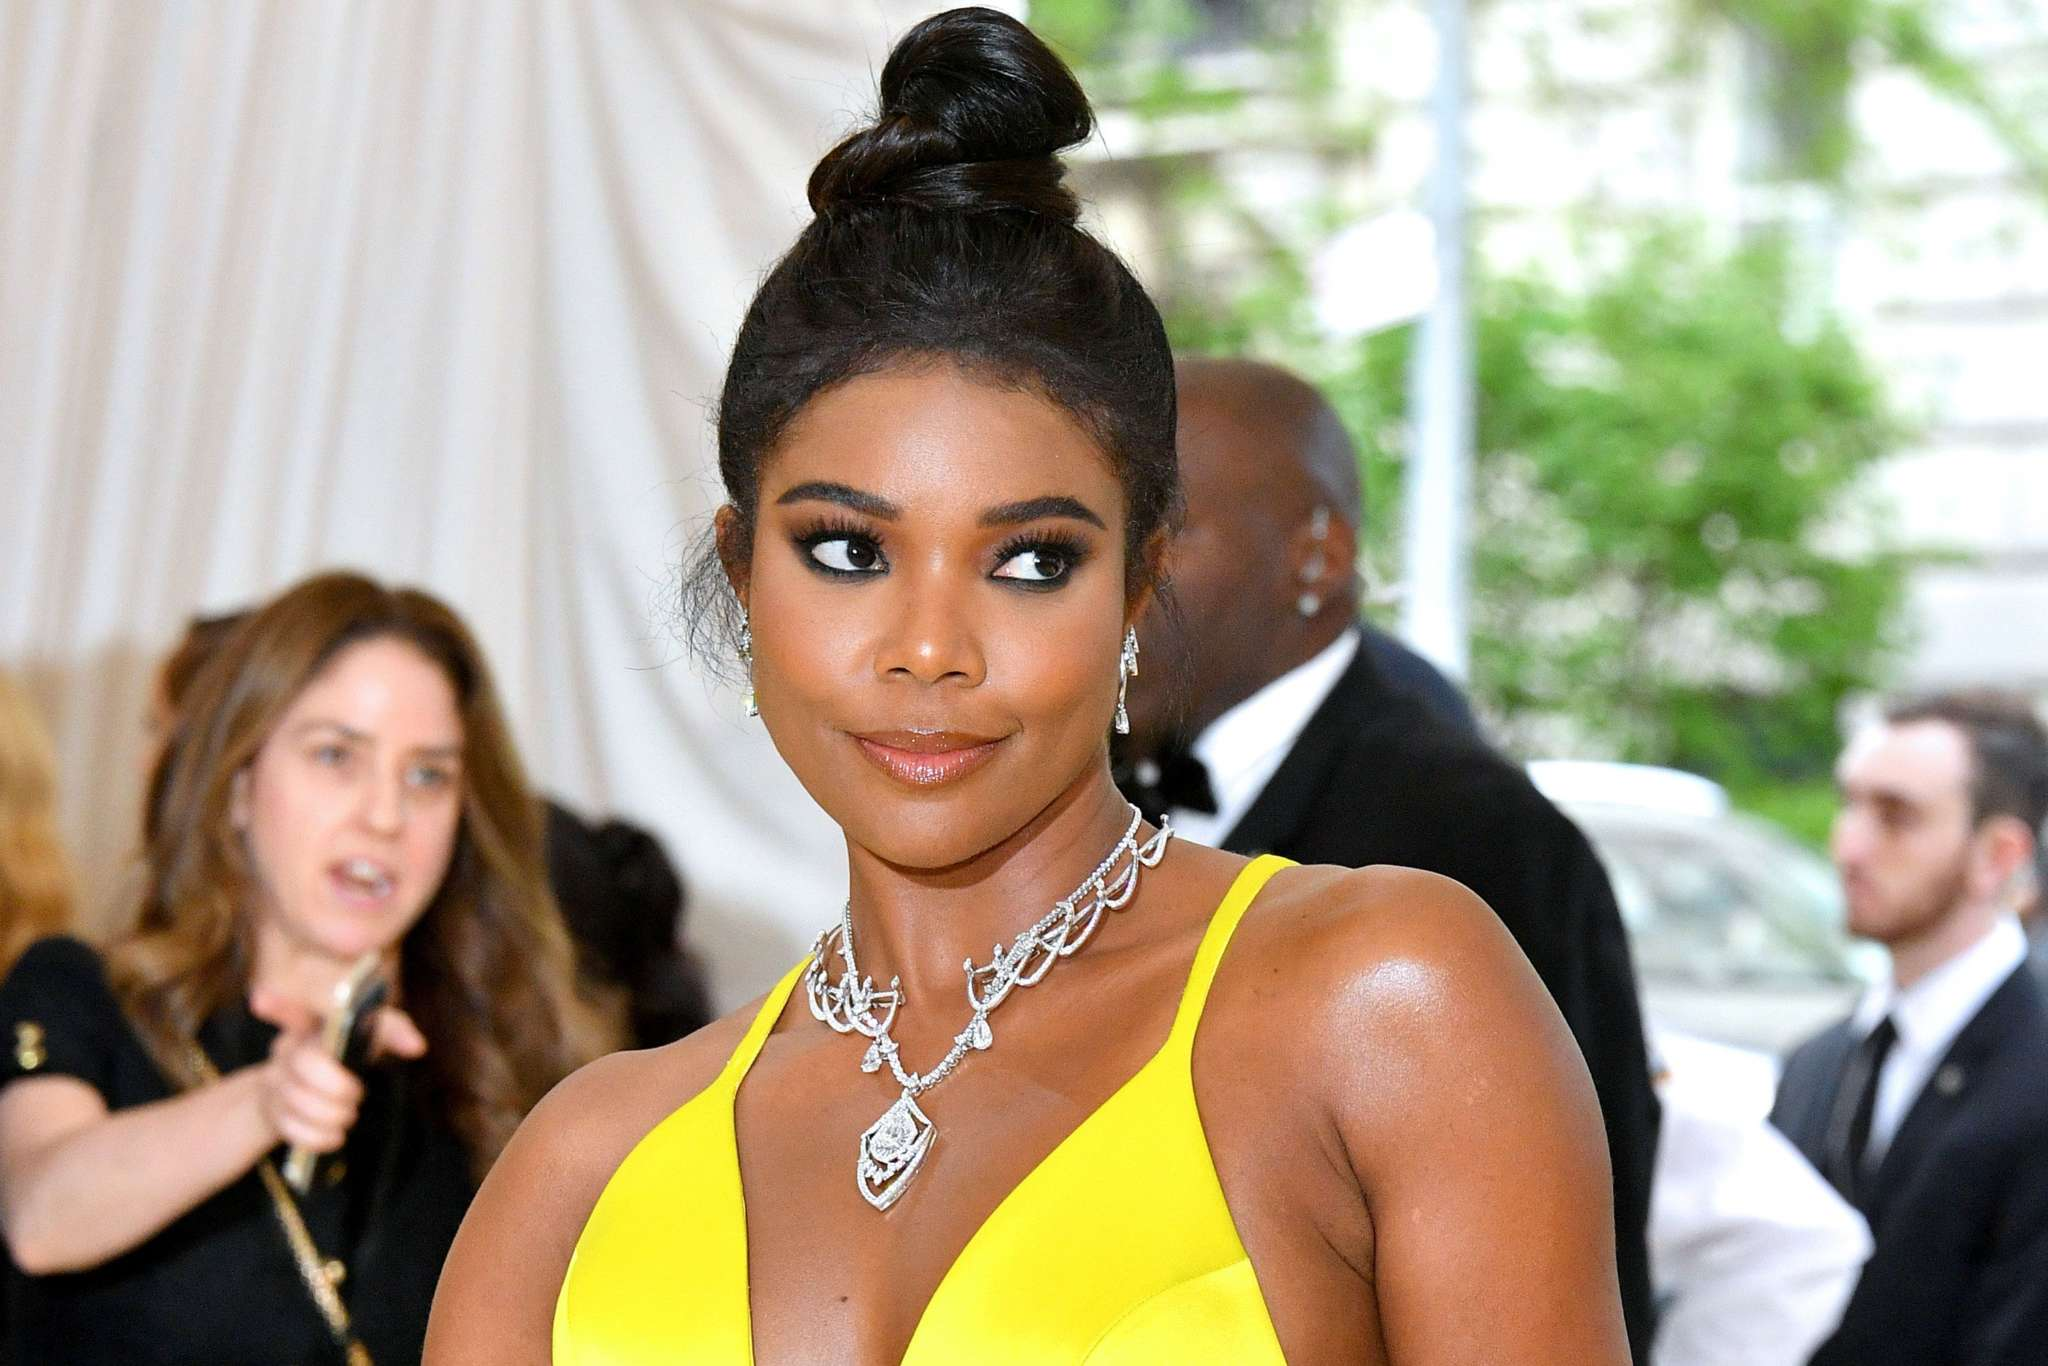 Gabrielle Union Drops A Piece Of Advice For Her Fans - See Her Clip Here